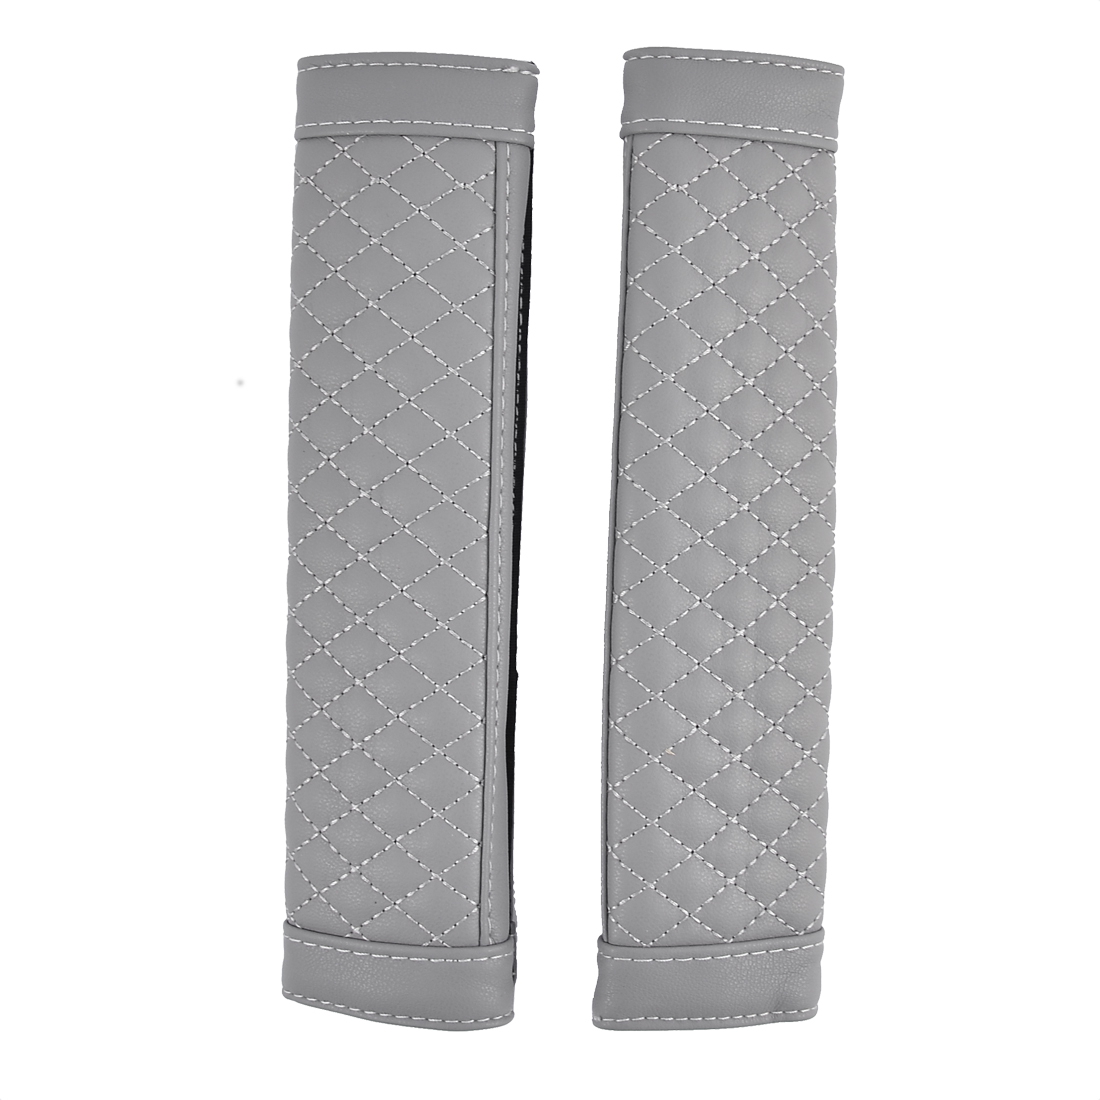 Pair Faux Leather Hook Loop Closure Car Safety Seatbelt Cover Protector Pad Gray